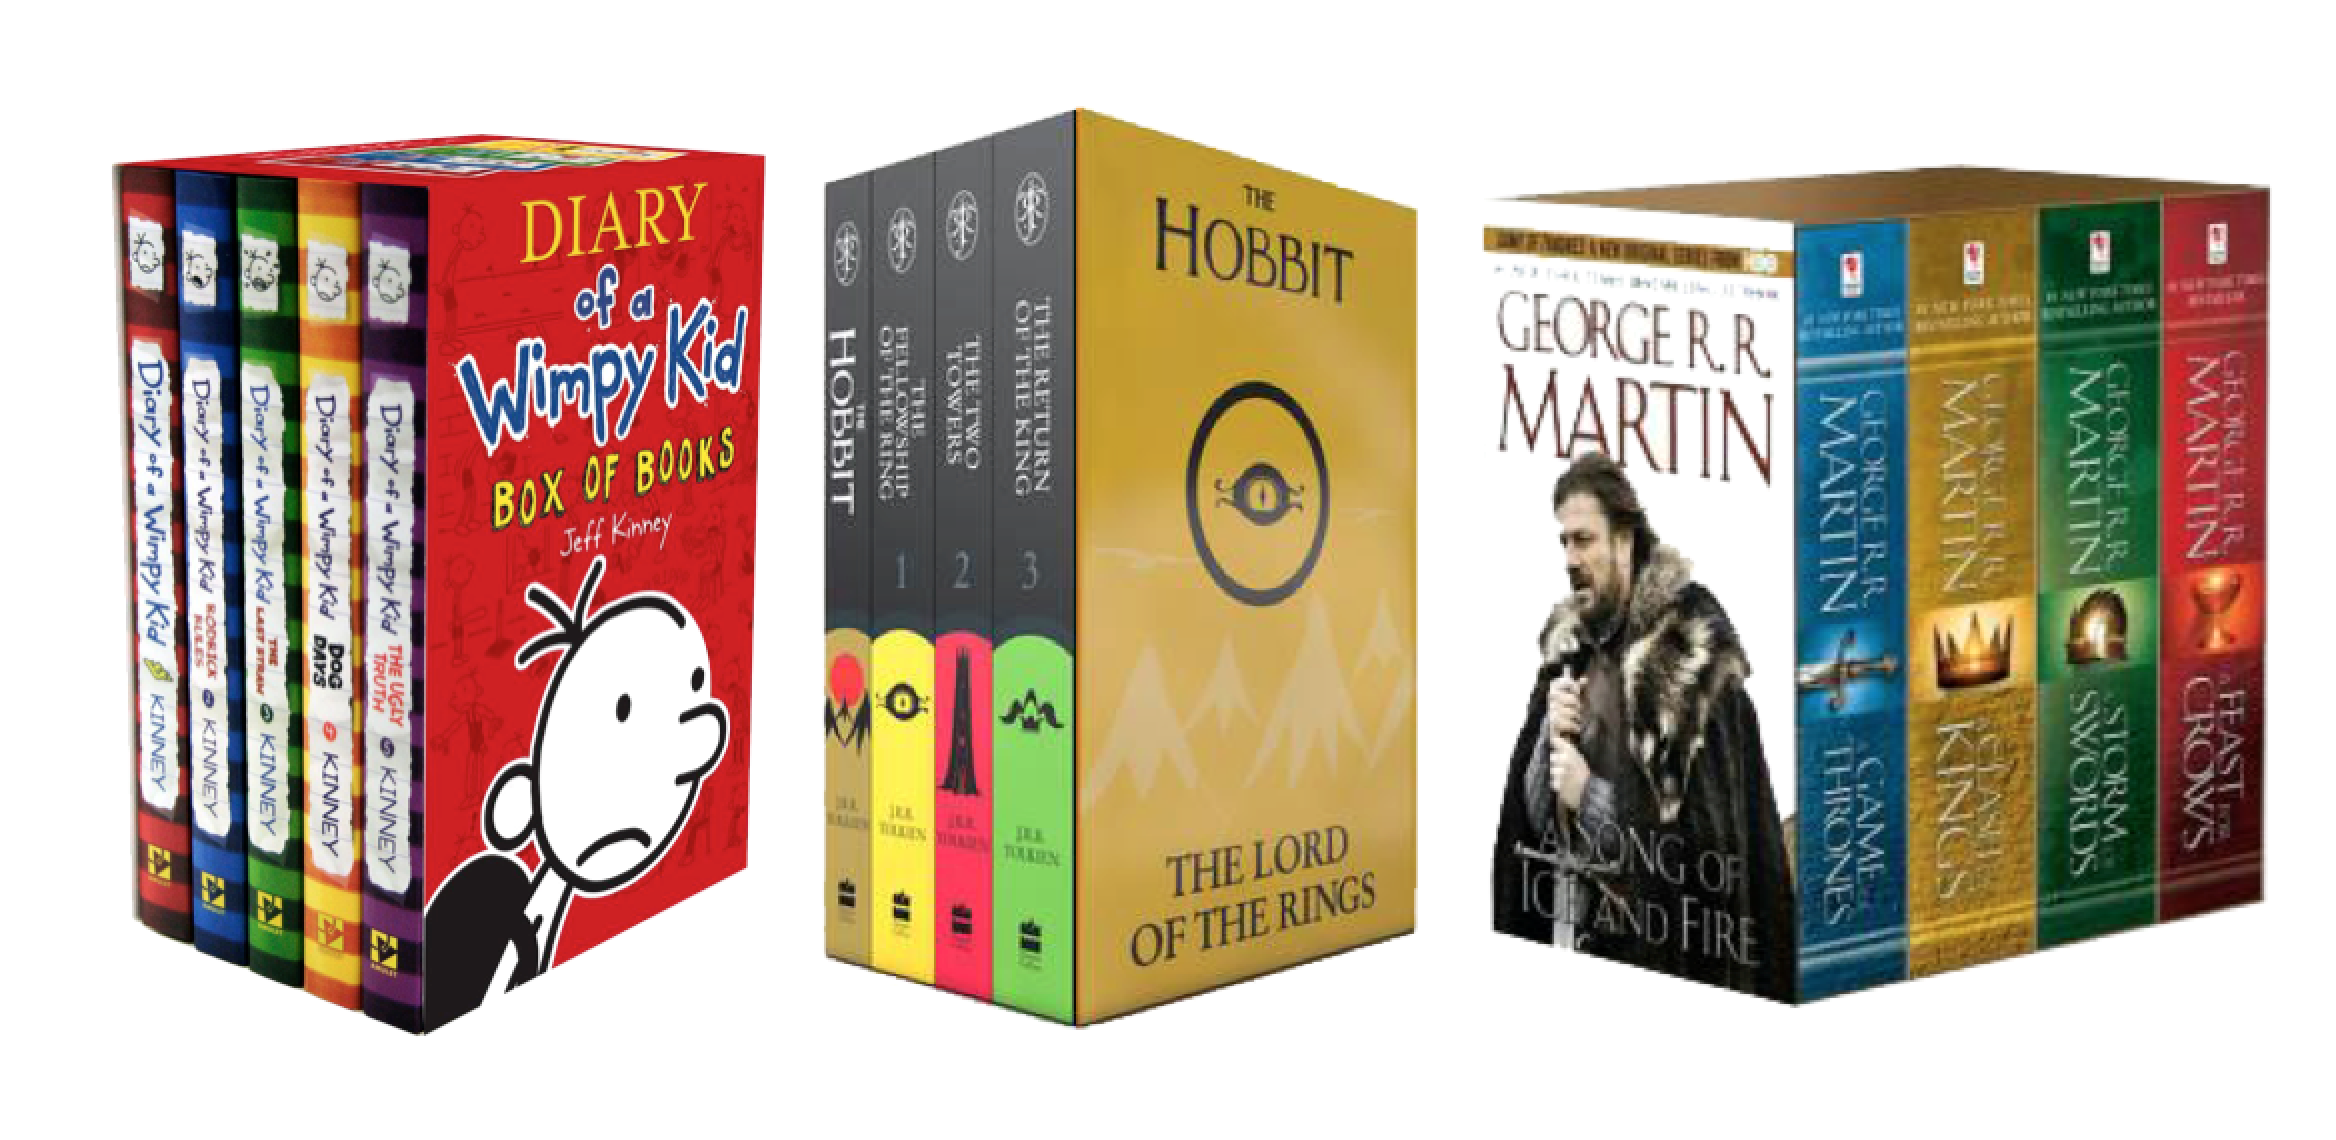 Books page 2 cziplee journal czipread diary of a wimpy kid the hobbit lotr and game of thrones boxed set of books solutioingenieria Images